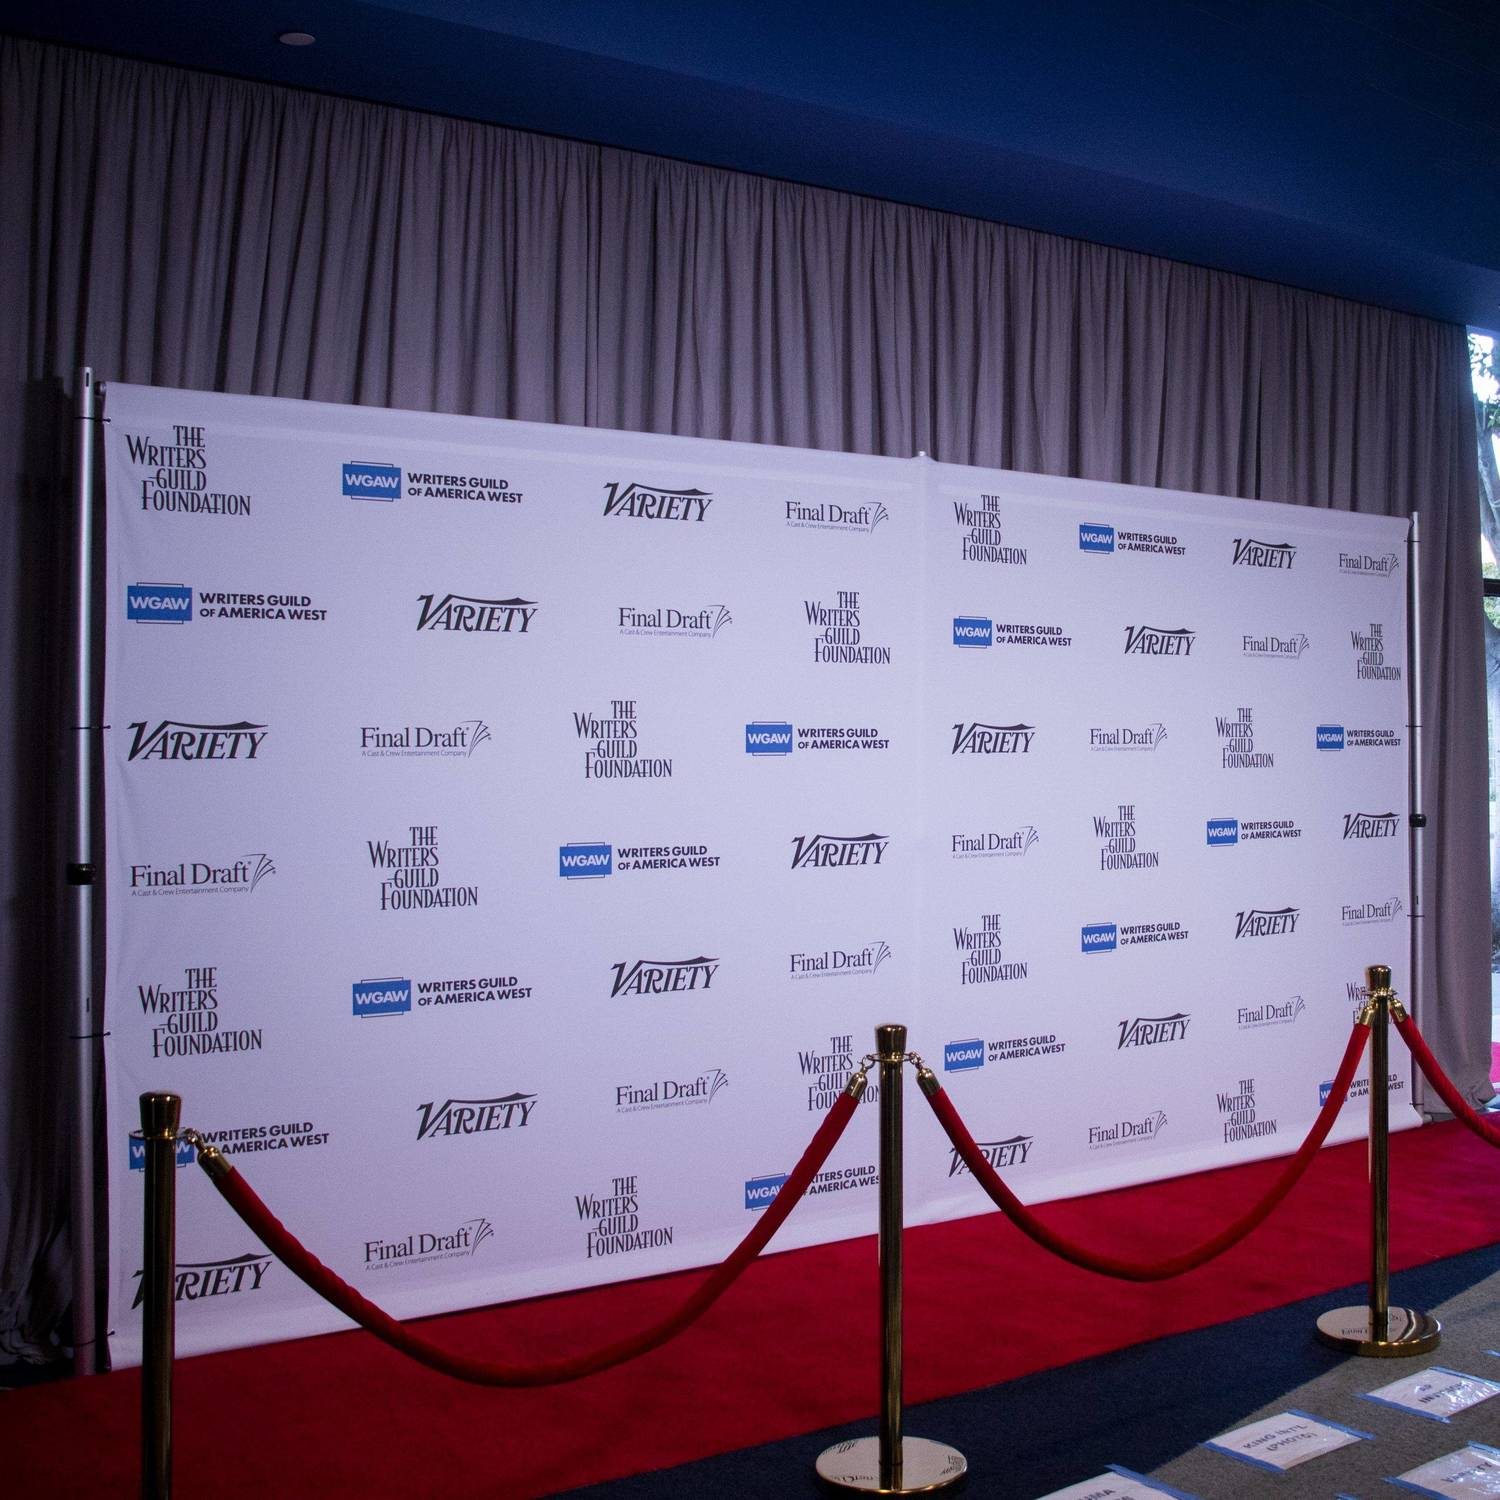 Backdrop and redcarpet